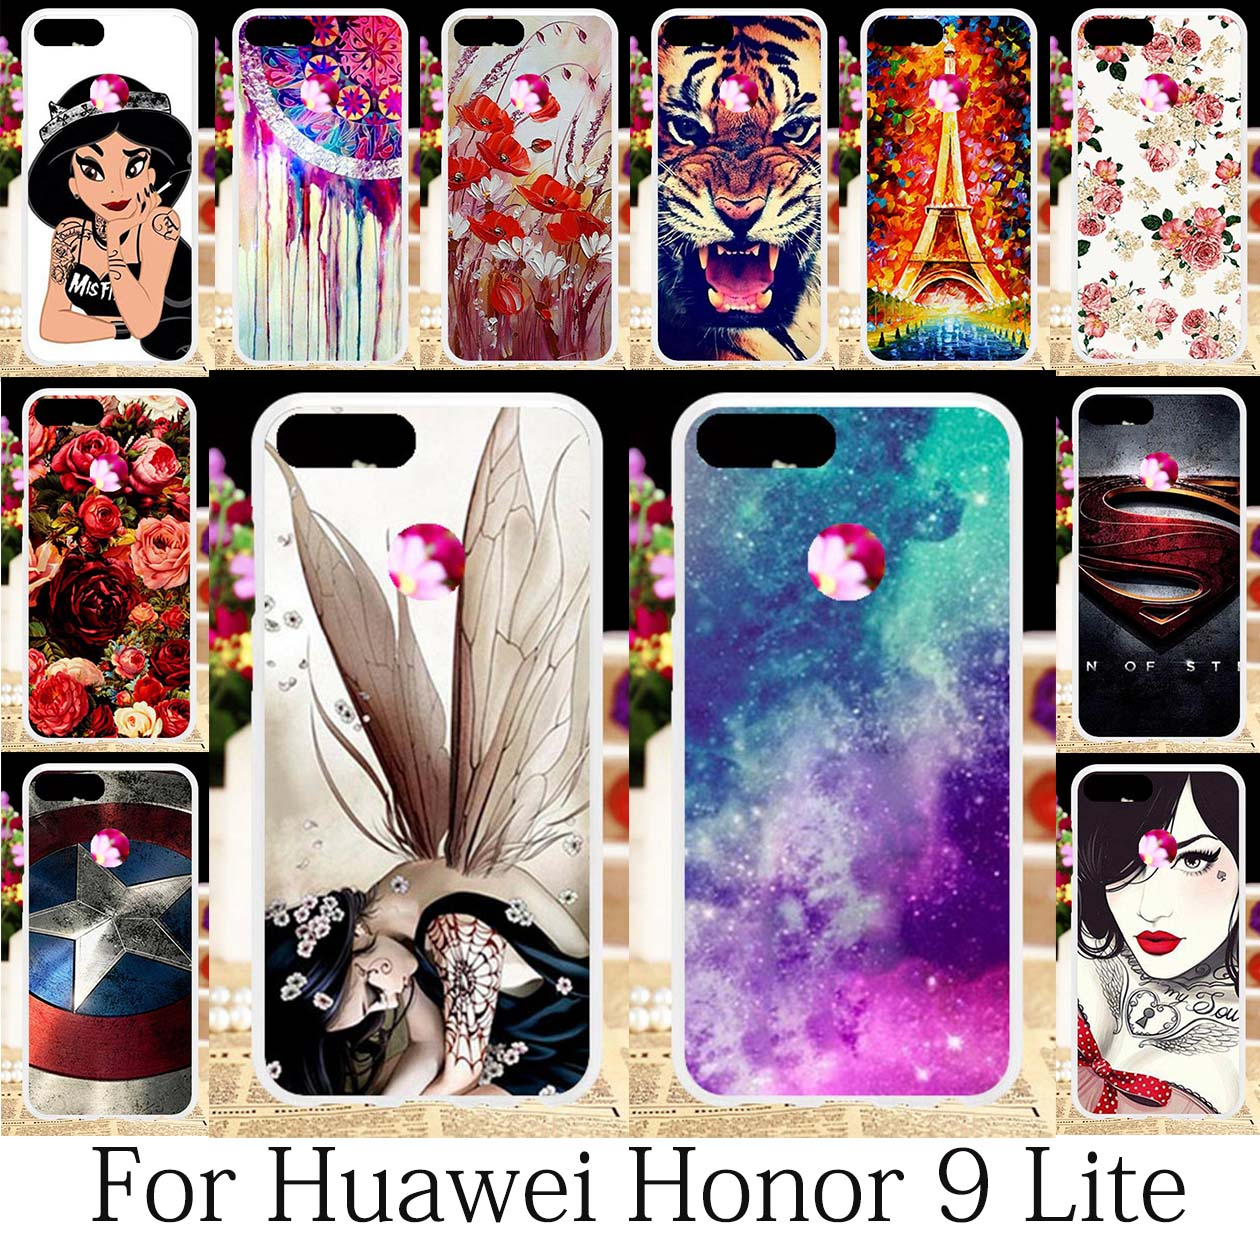 TAOYUNXI For Coque Huawei Honor 9 Lite Case Silicone Patterned Fitted Huawei Honor 9 Lite Cover Cute Girls Anime Shell 5.65 inch